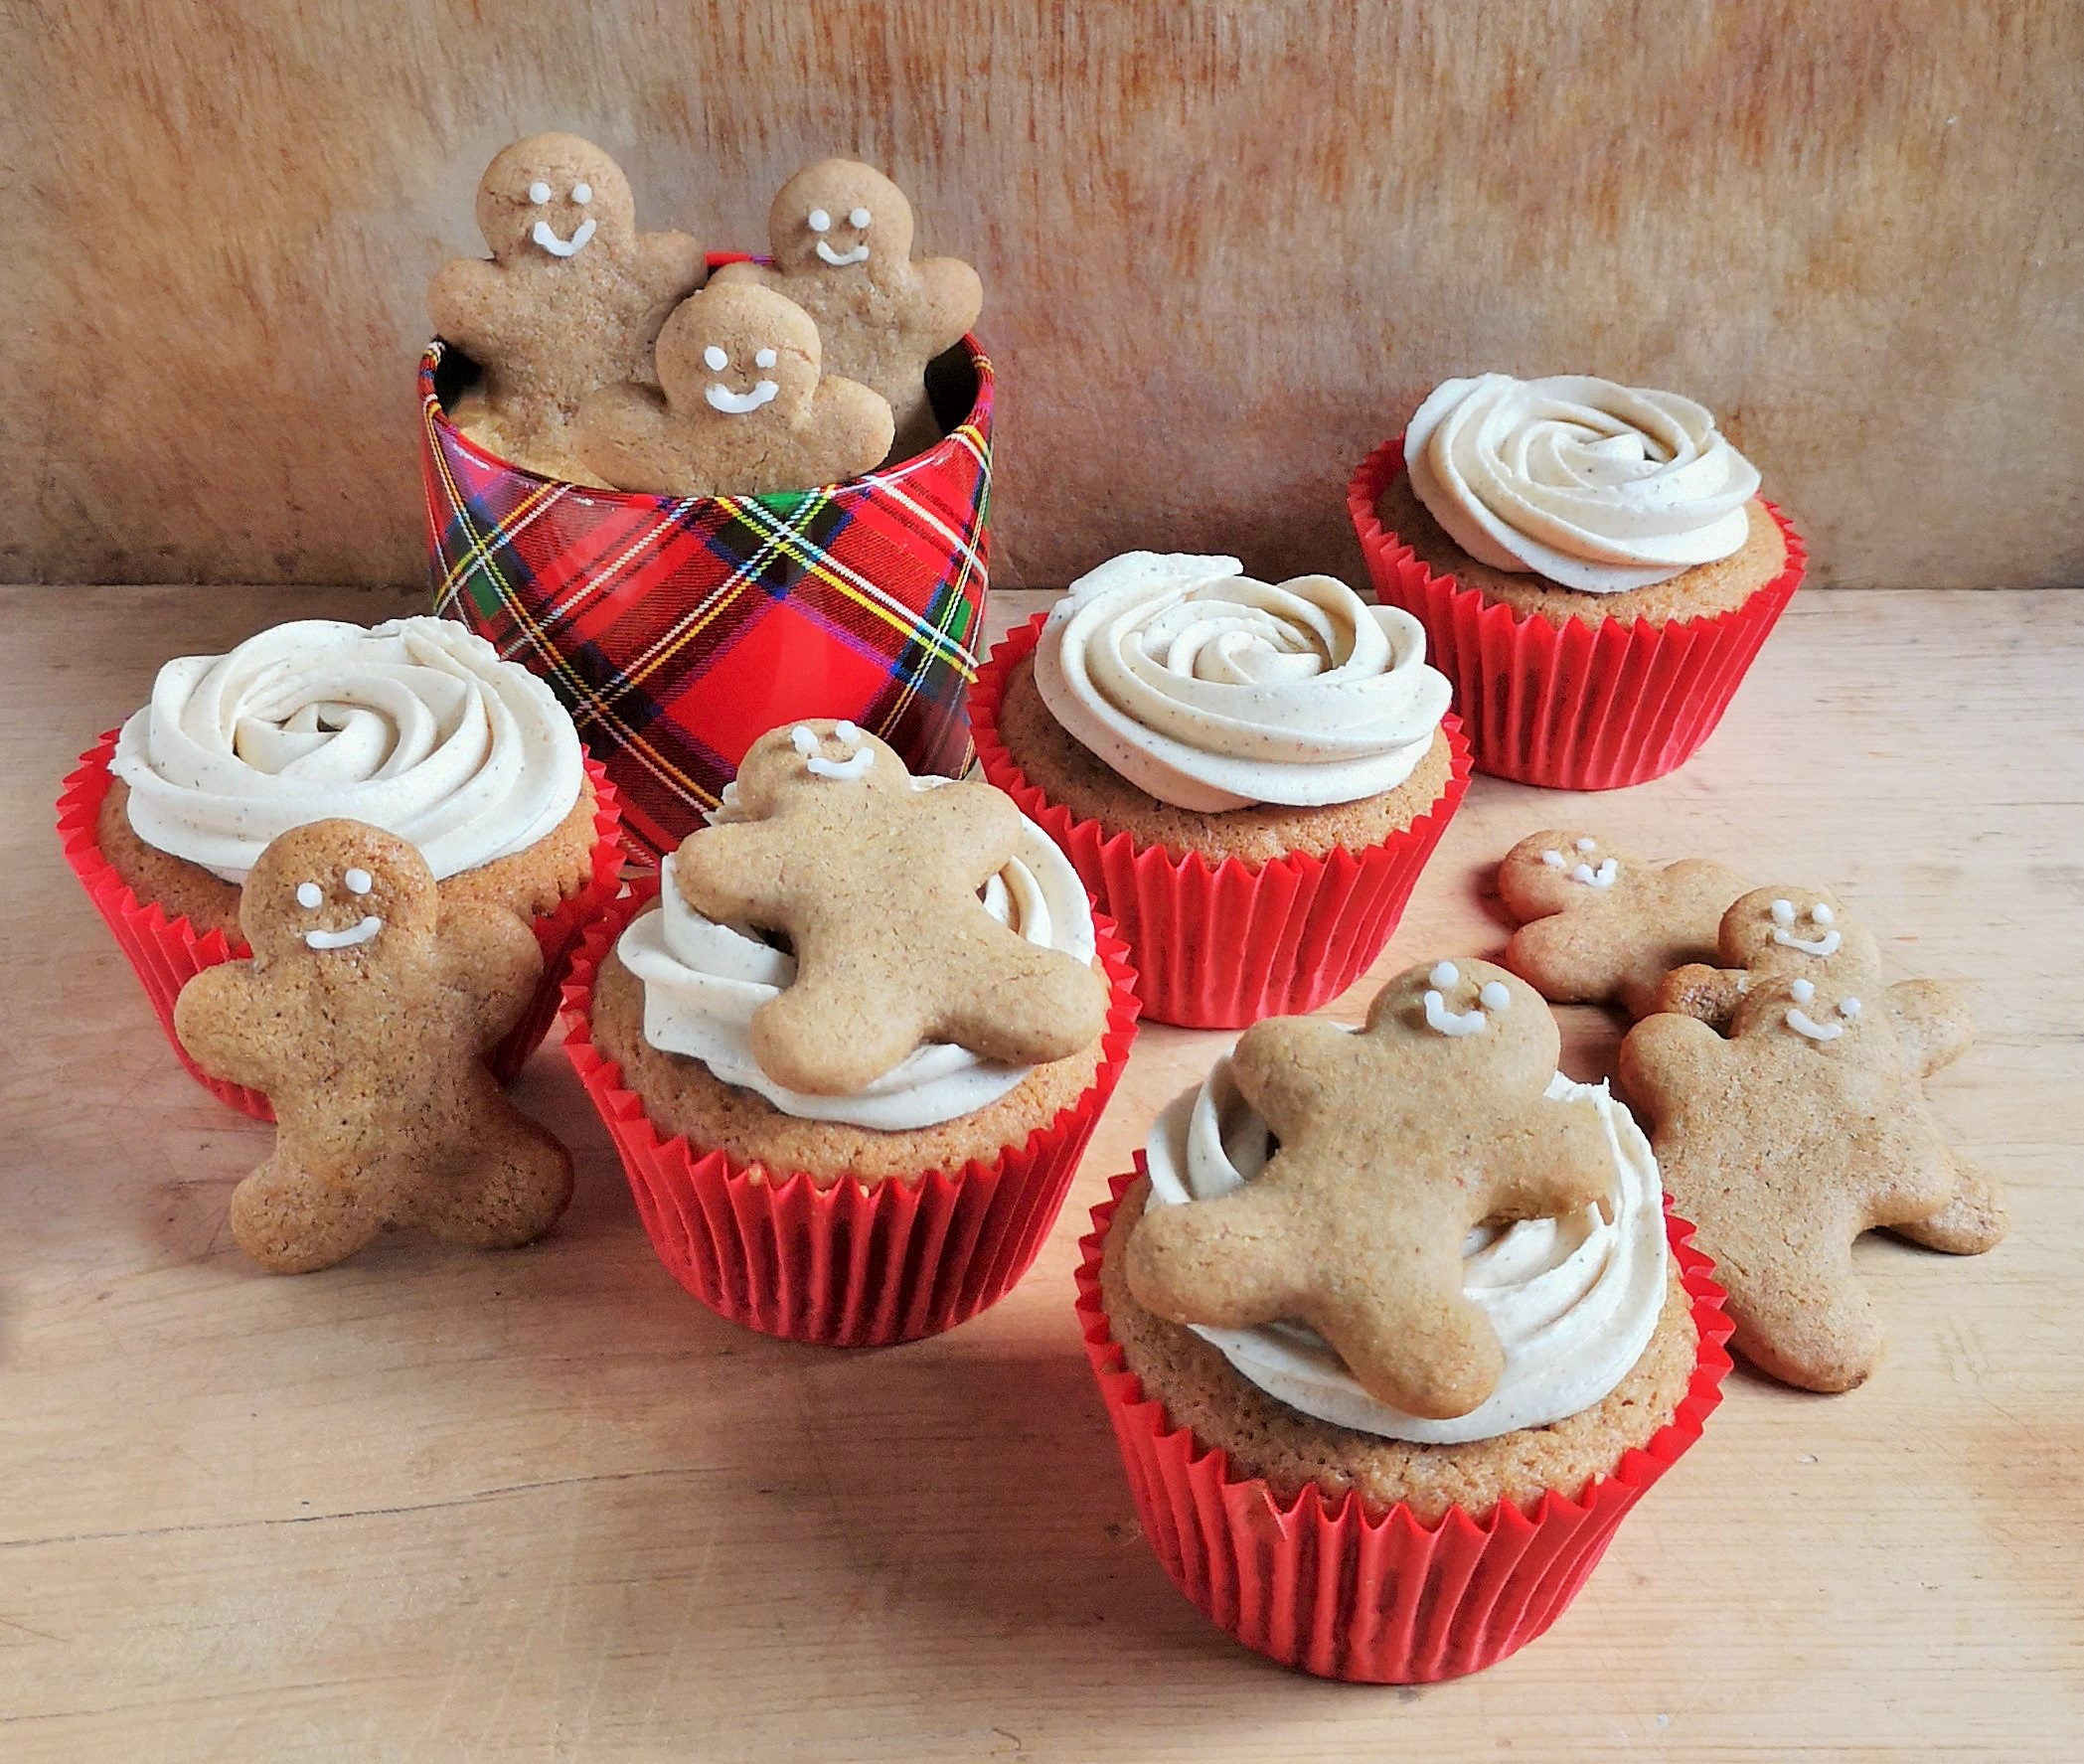 Ginger_cake_cupcakes_iced_and_decorated_with_mini_gingerbread_men